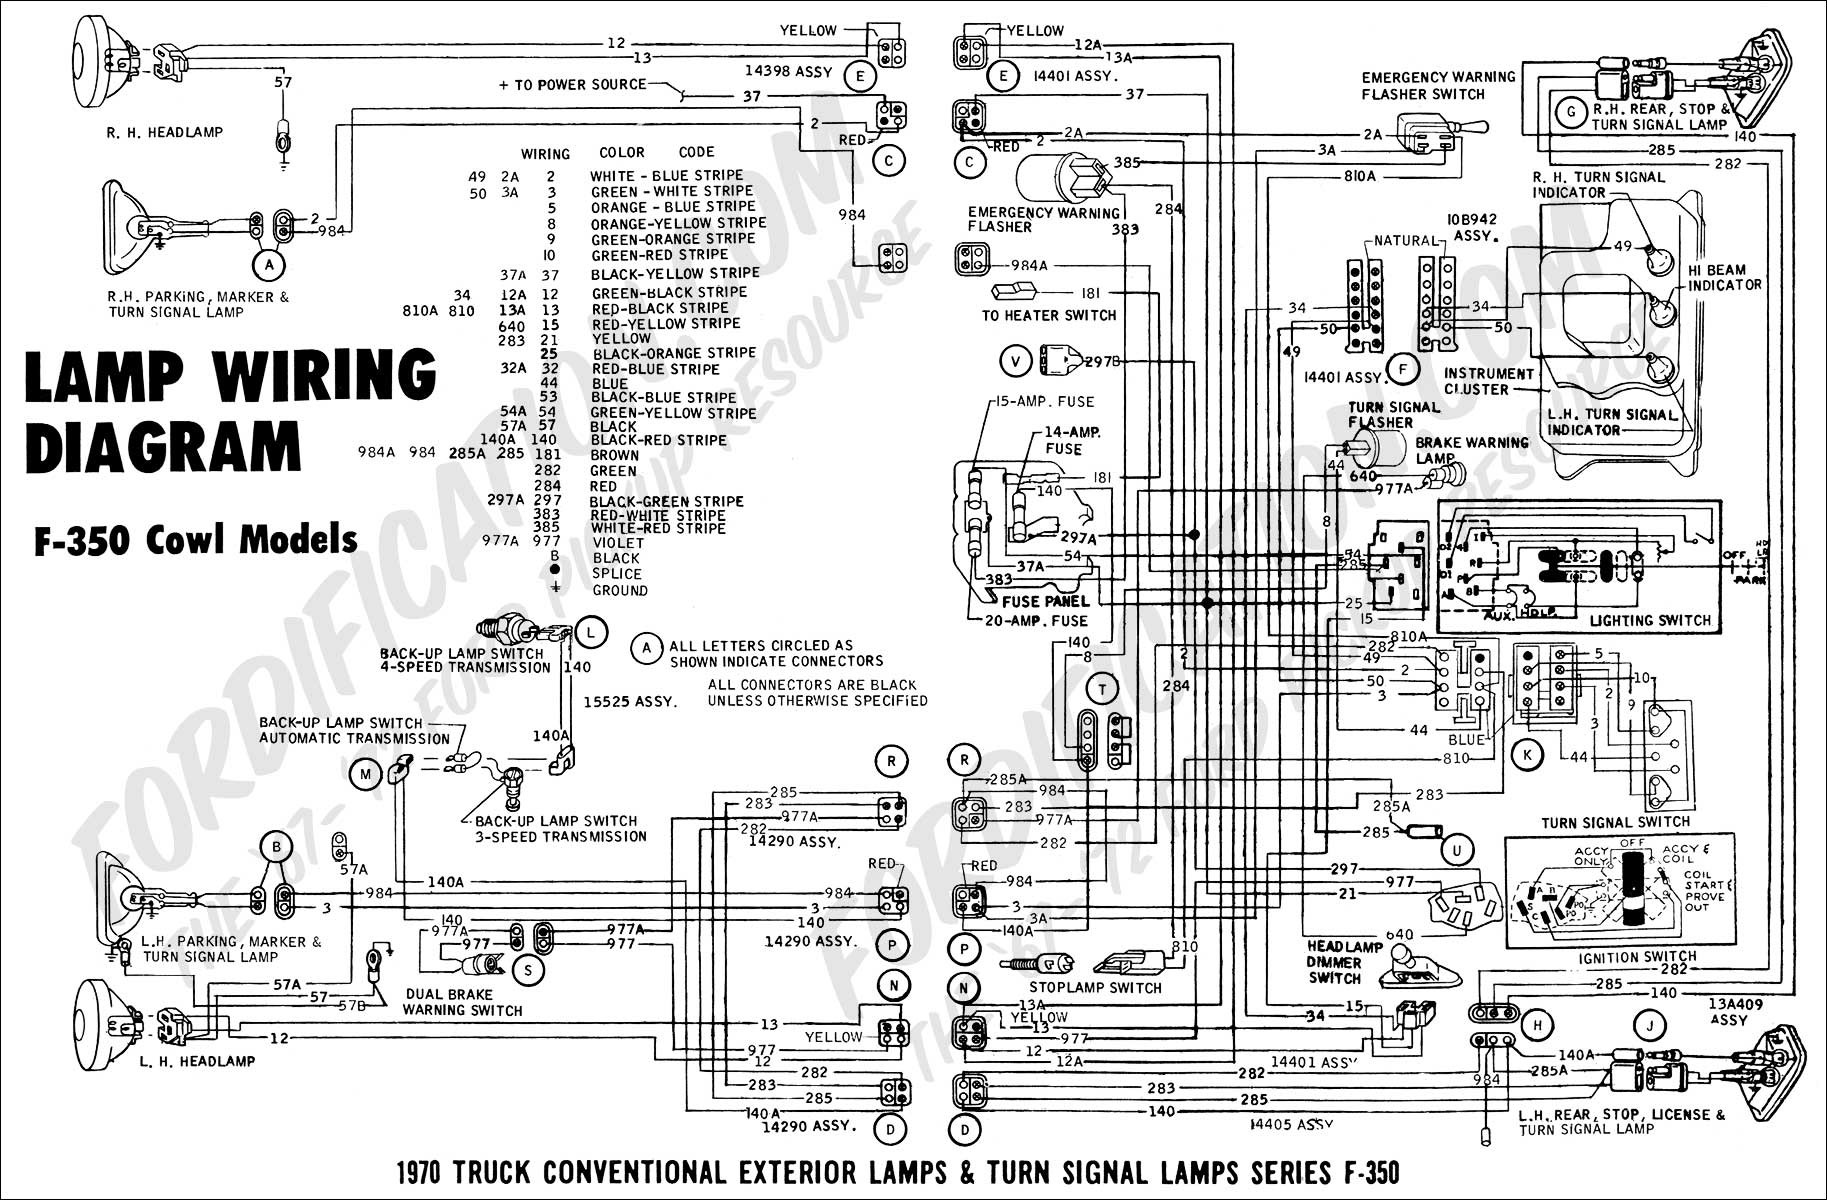 Wiring Diagrams for Trucks ford Truck Technical Drawings and Schematics Section H Wiring Of Wiring Diagrams for Trucks